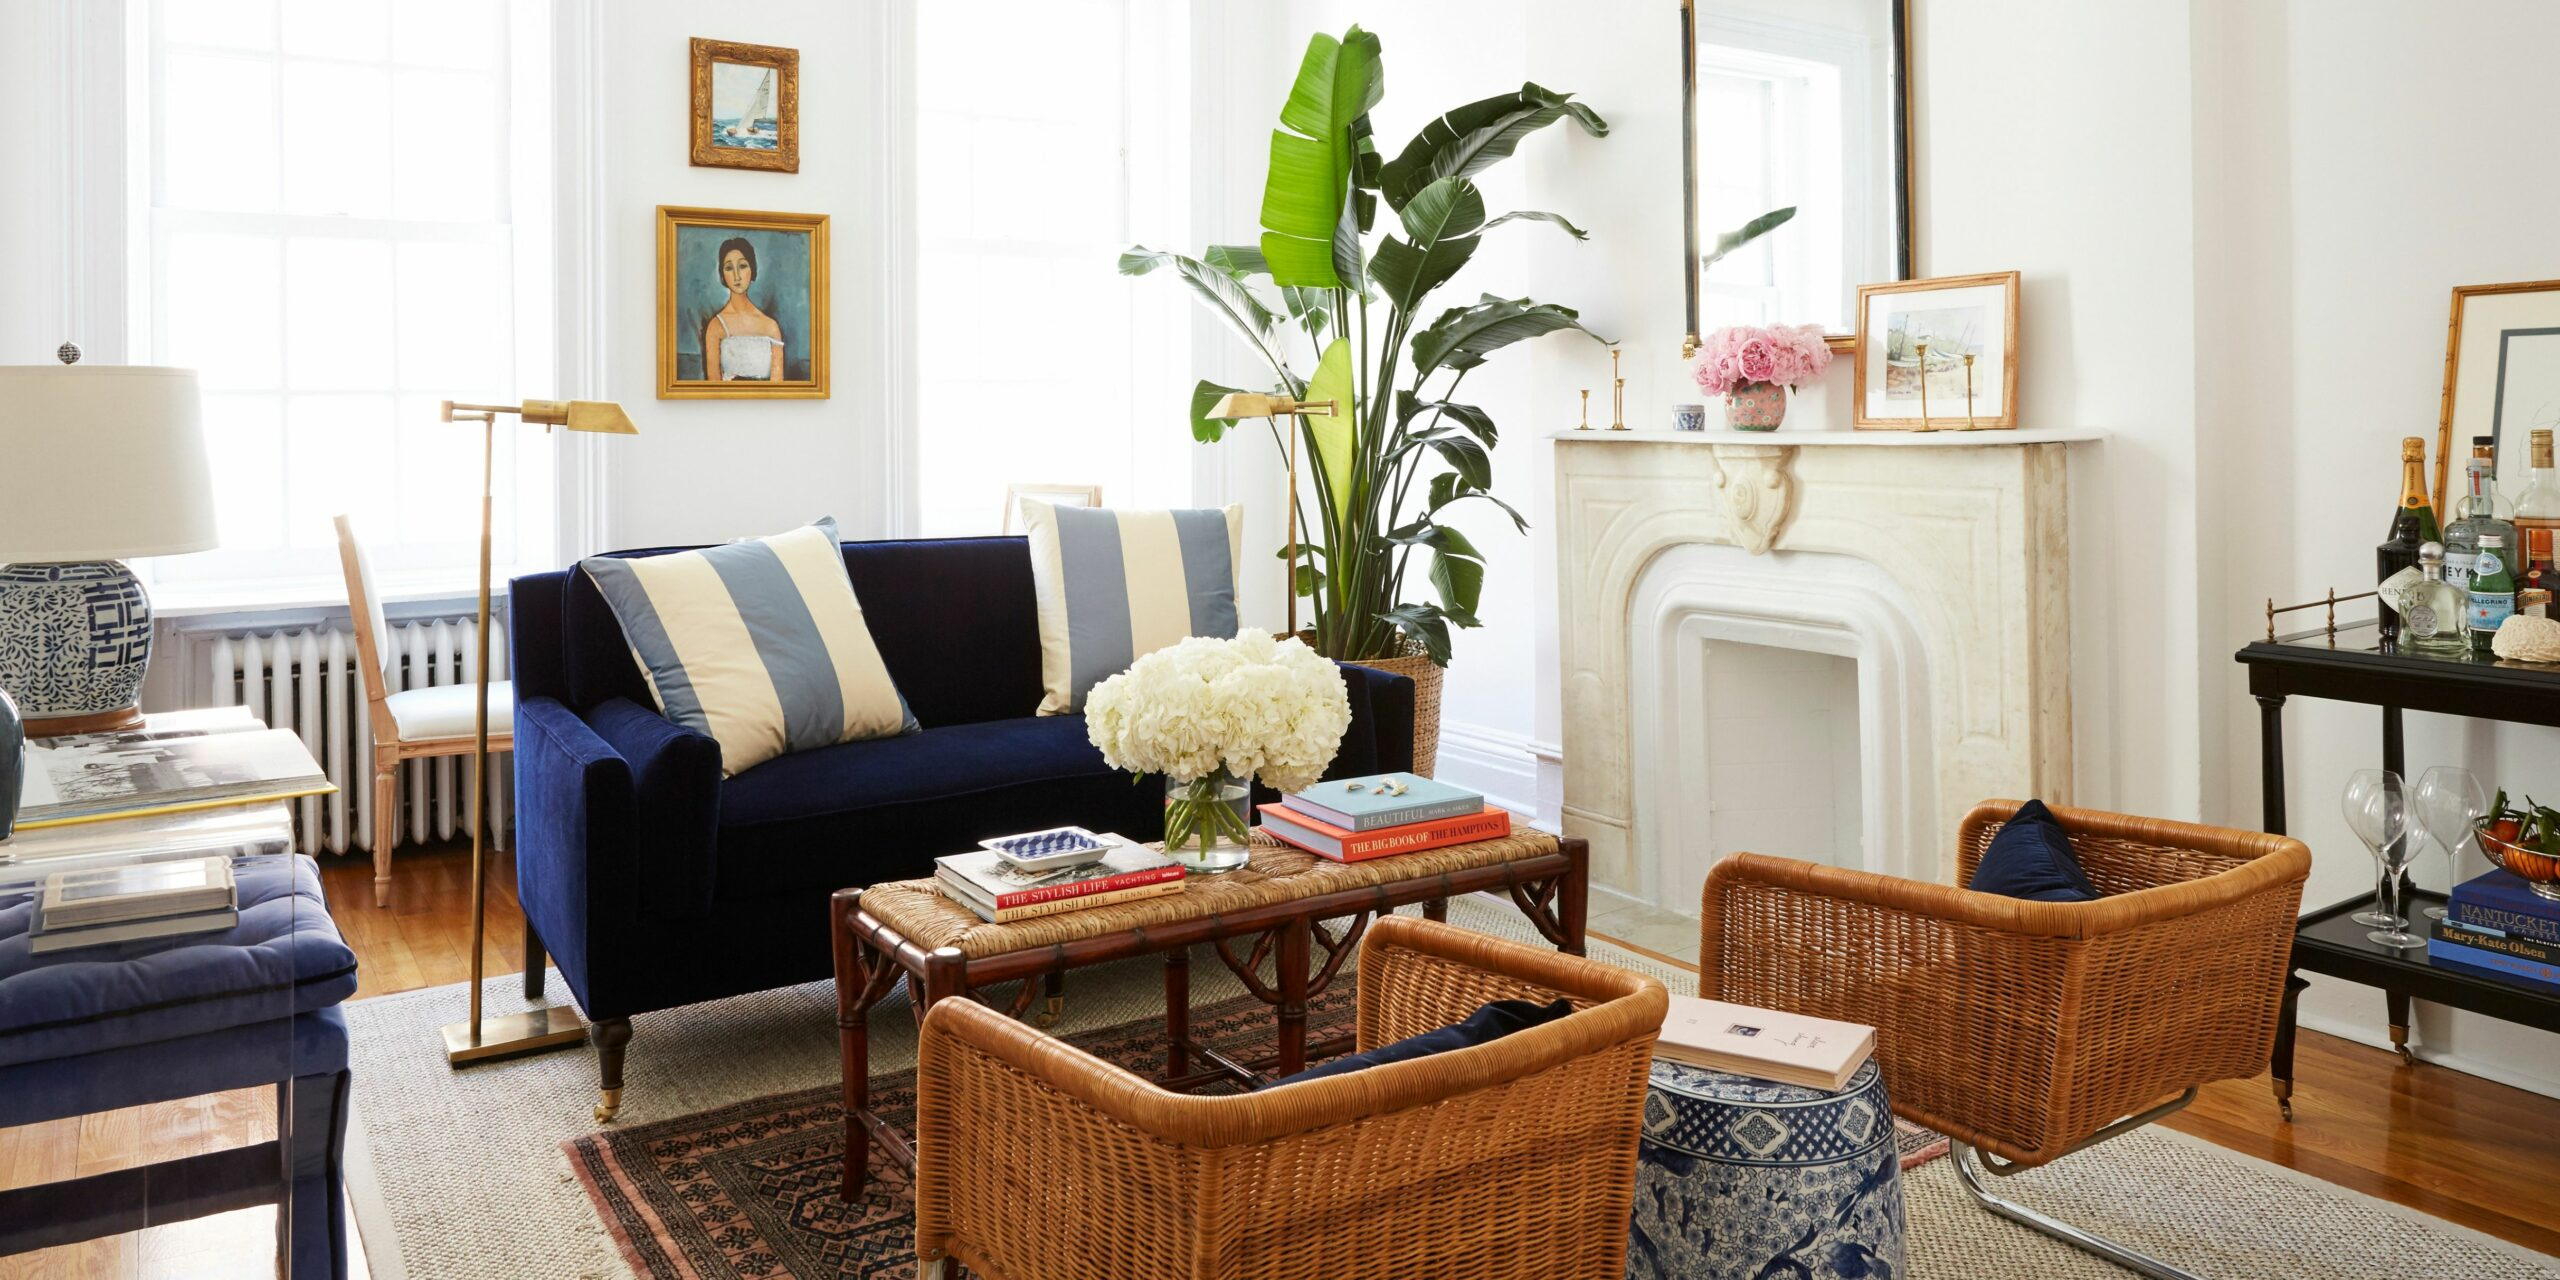 12 Small Living Room Ideas That Will Maximize Your Space ...